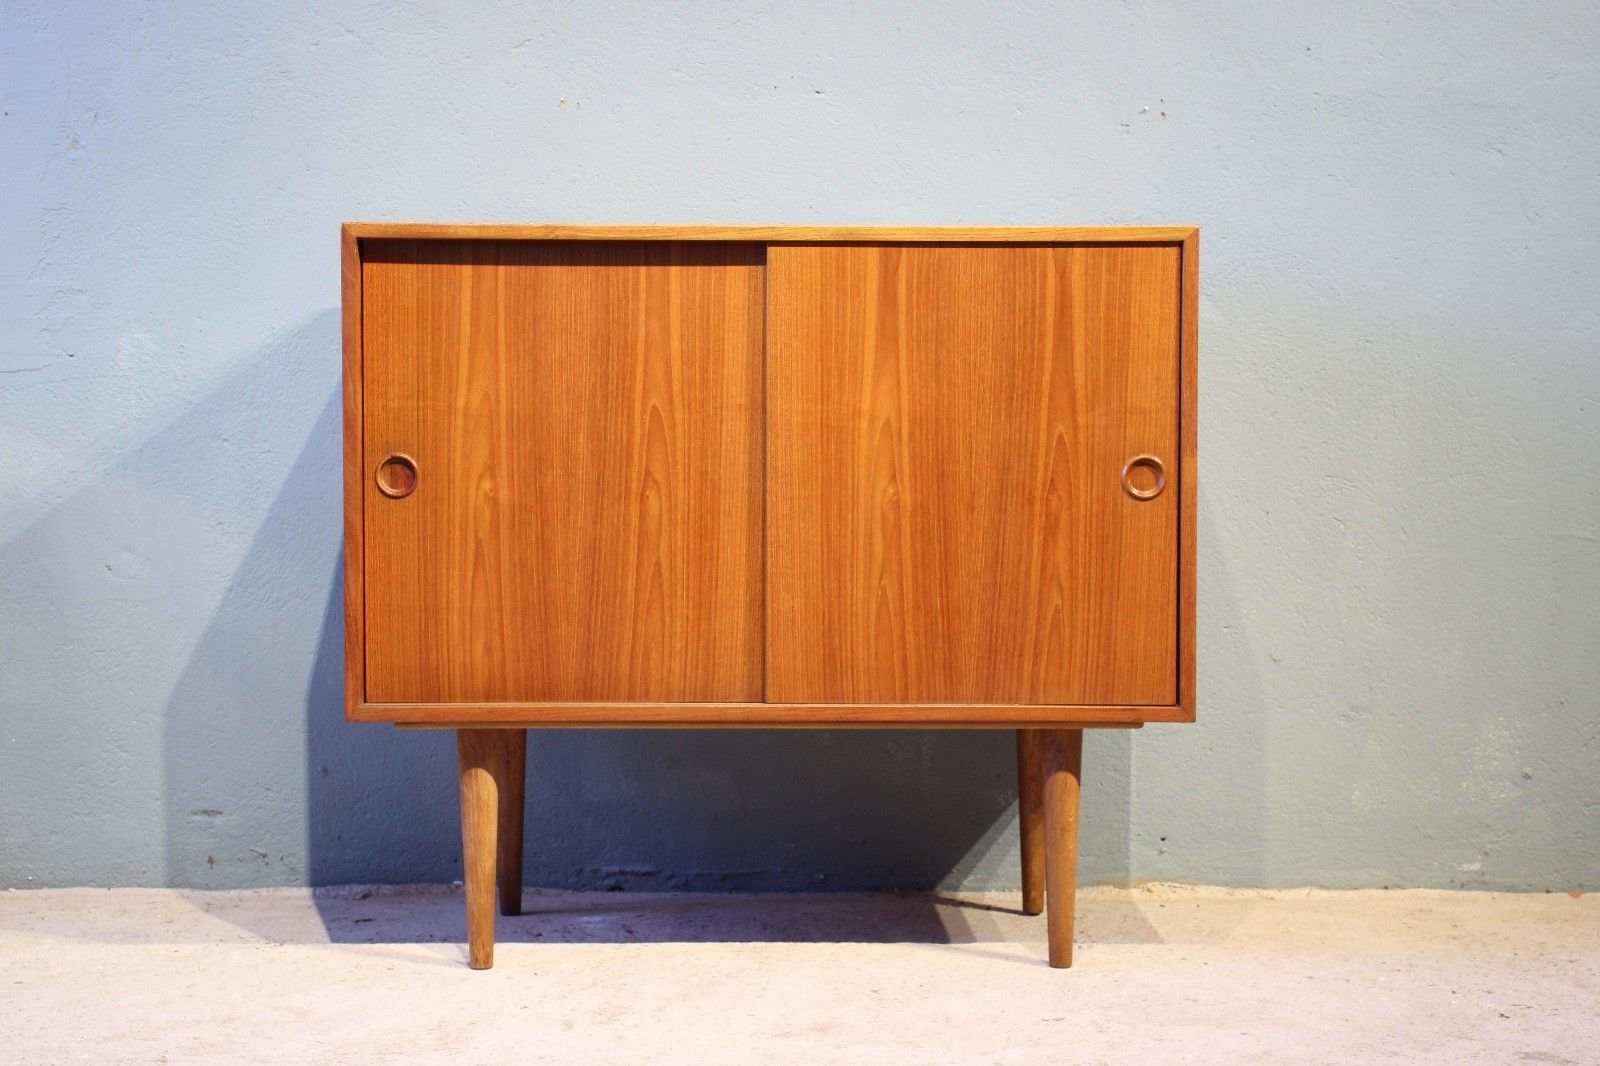 d nisches teak sideboard von kai kristiansen f r fm m bler 1960er bei pamono kaufen. Black Bedroom Furniture Sets. Home Design Ideas